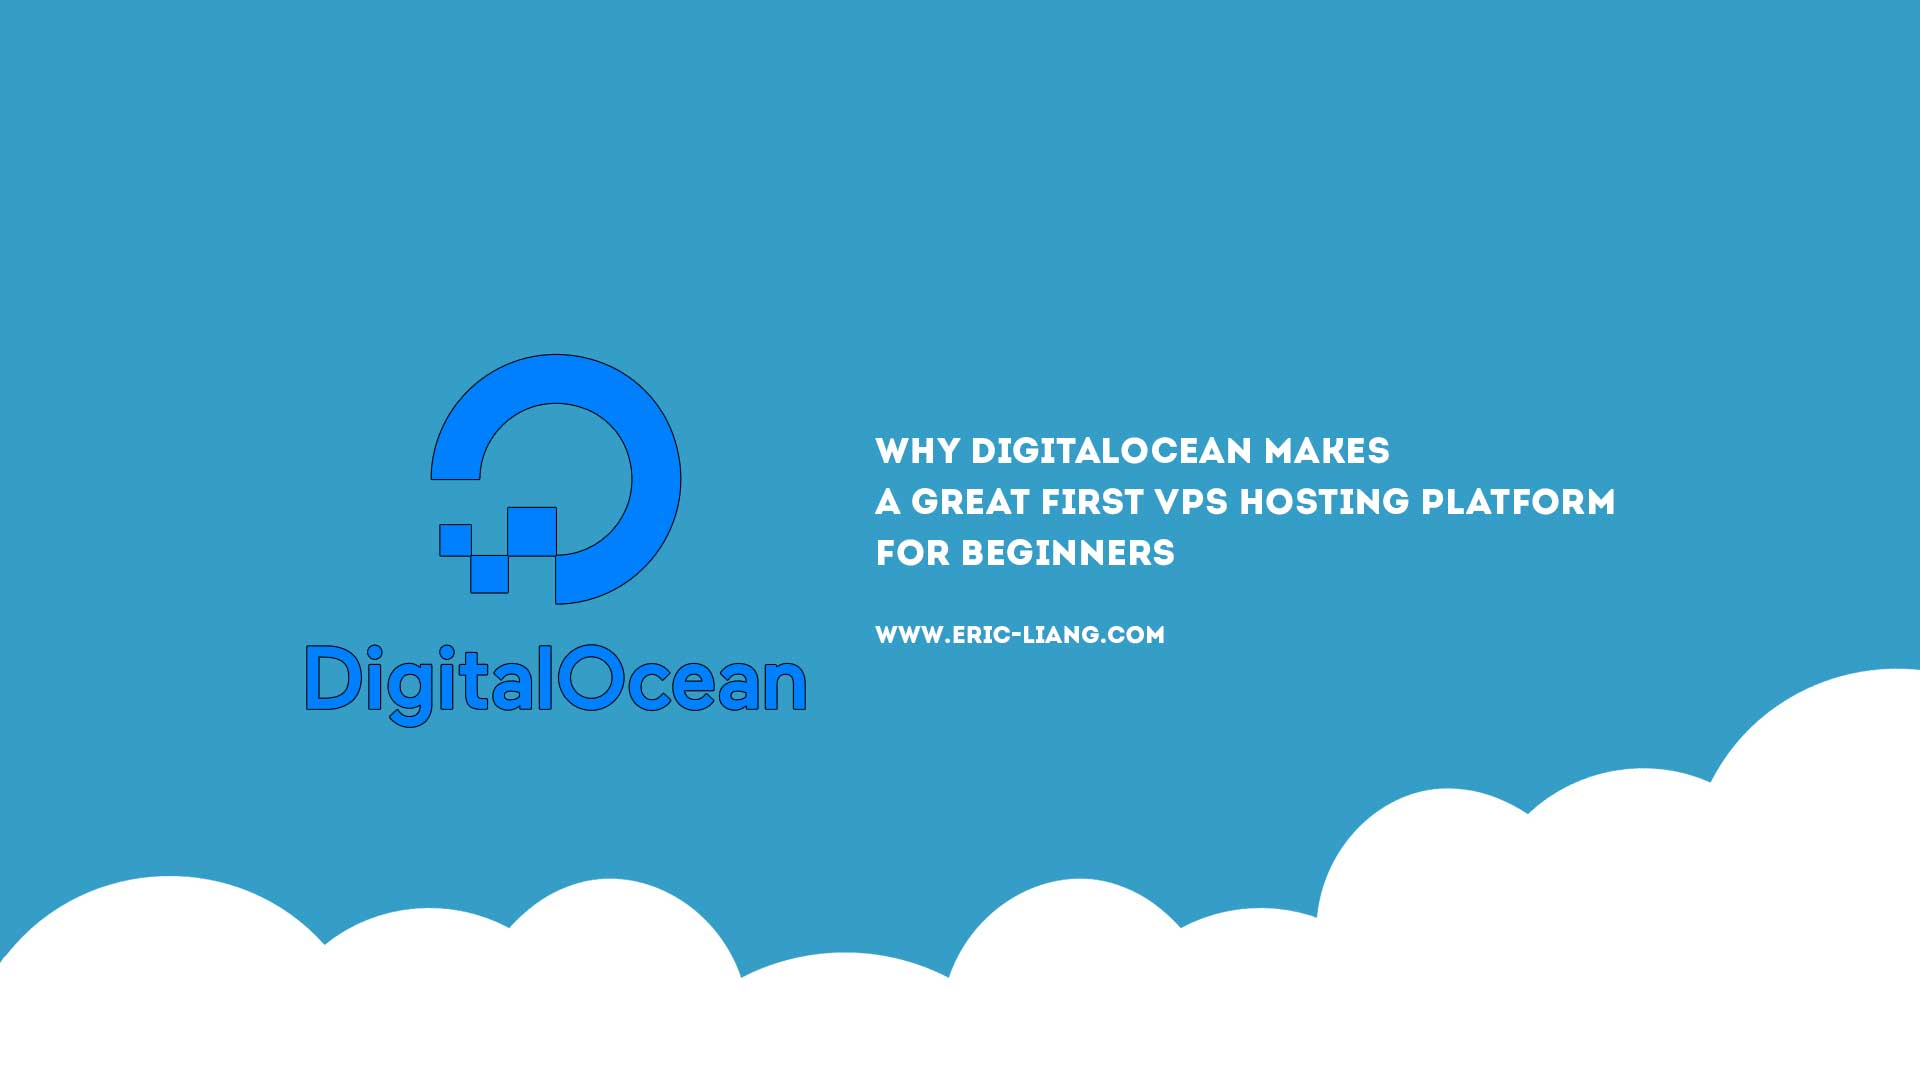 Why DigitalOcean Makes A Great First VPS Hosting Platform For Beginners